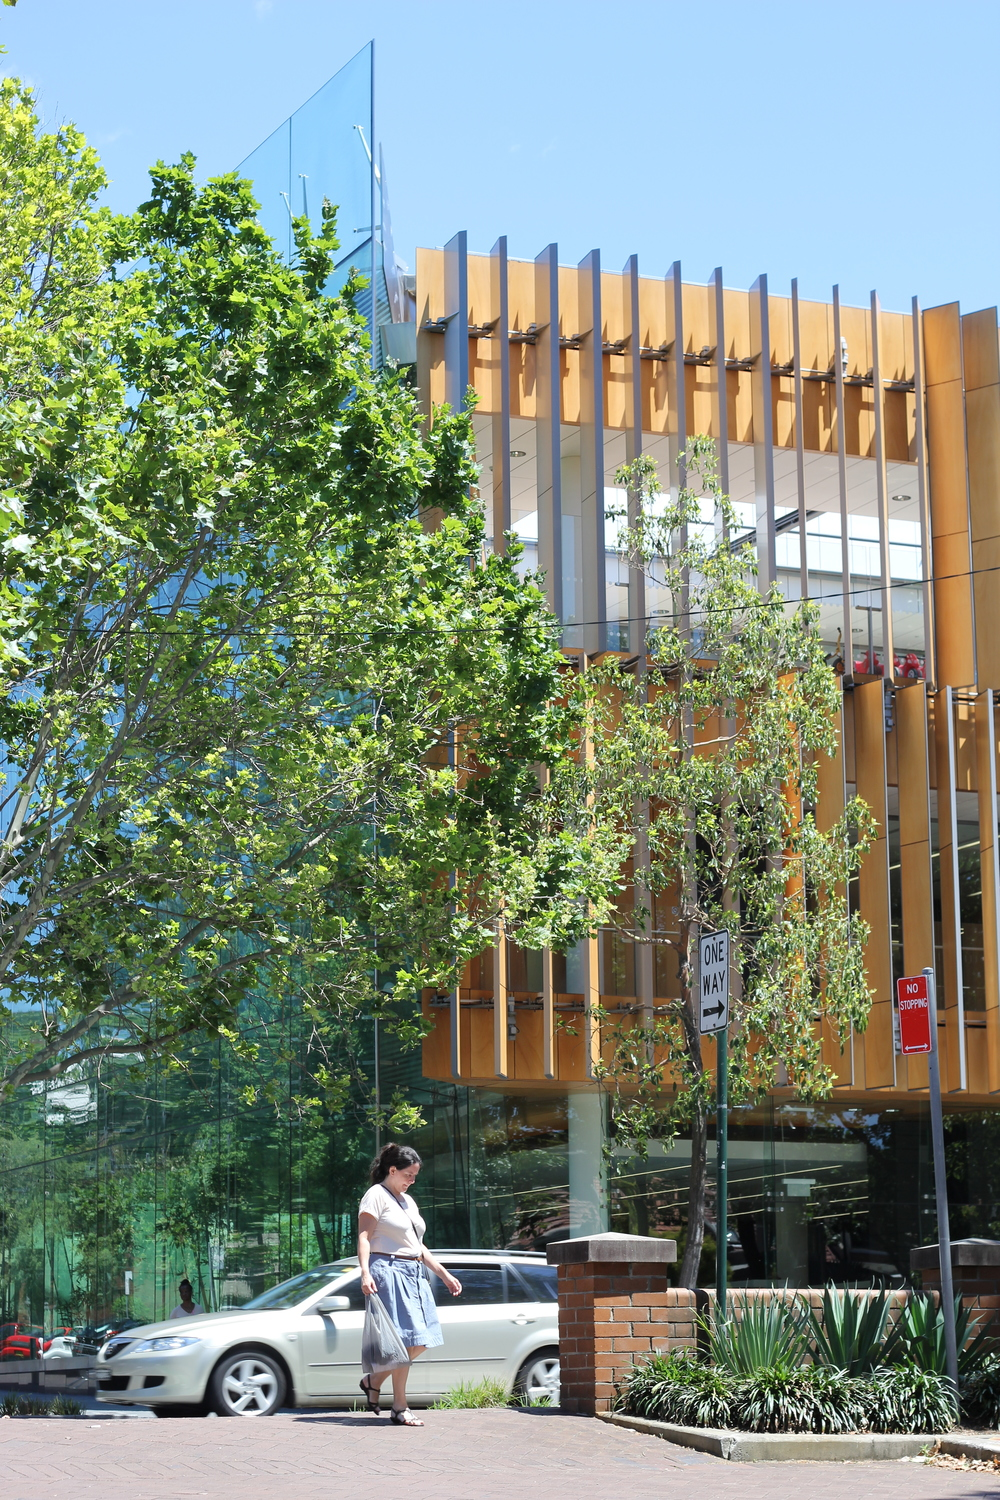 ACCOMMODATION GRANTS REVIEW, POLICY AND GUIDELINES  City of Sydney   Cred delivered and implemented the City of Sydney's Accommodation Grants  ...more